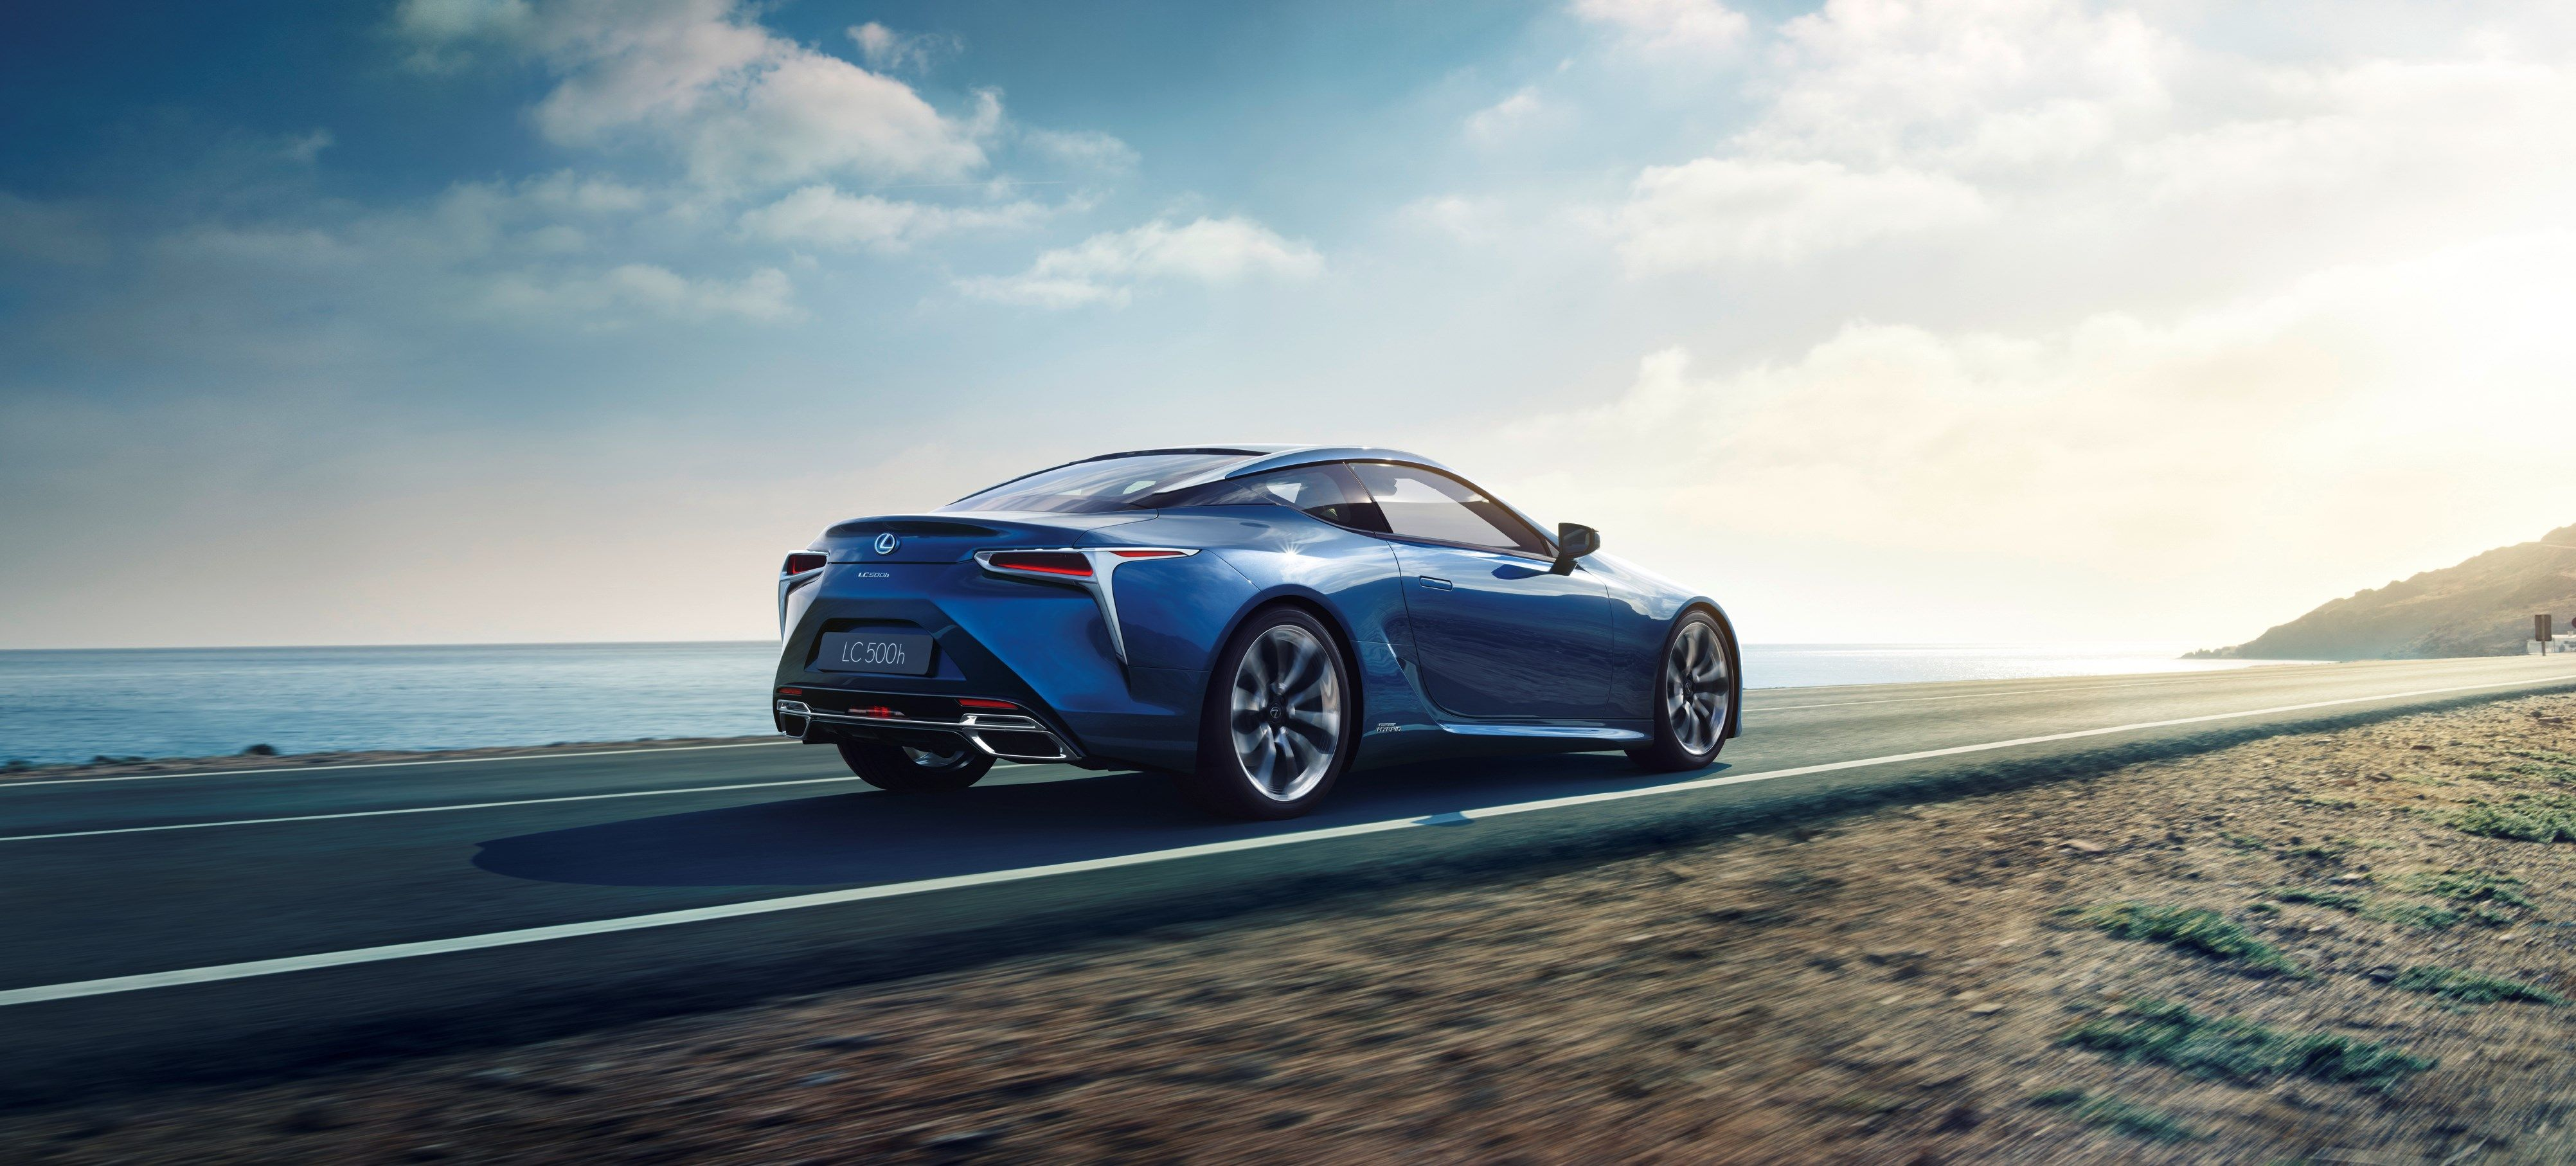 4k Lexus Lc 500 Hd Wallpaper 4008x1814 Wallpapers And Backgronds